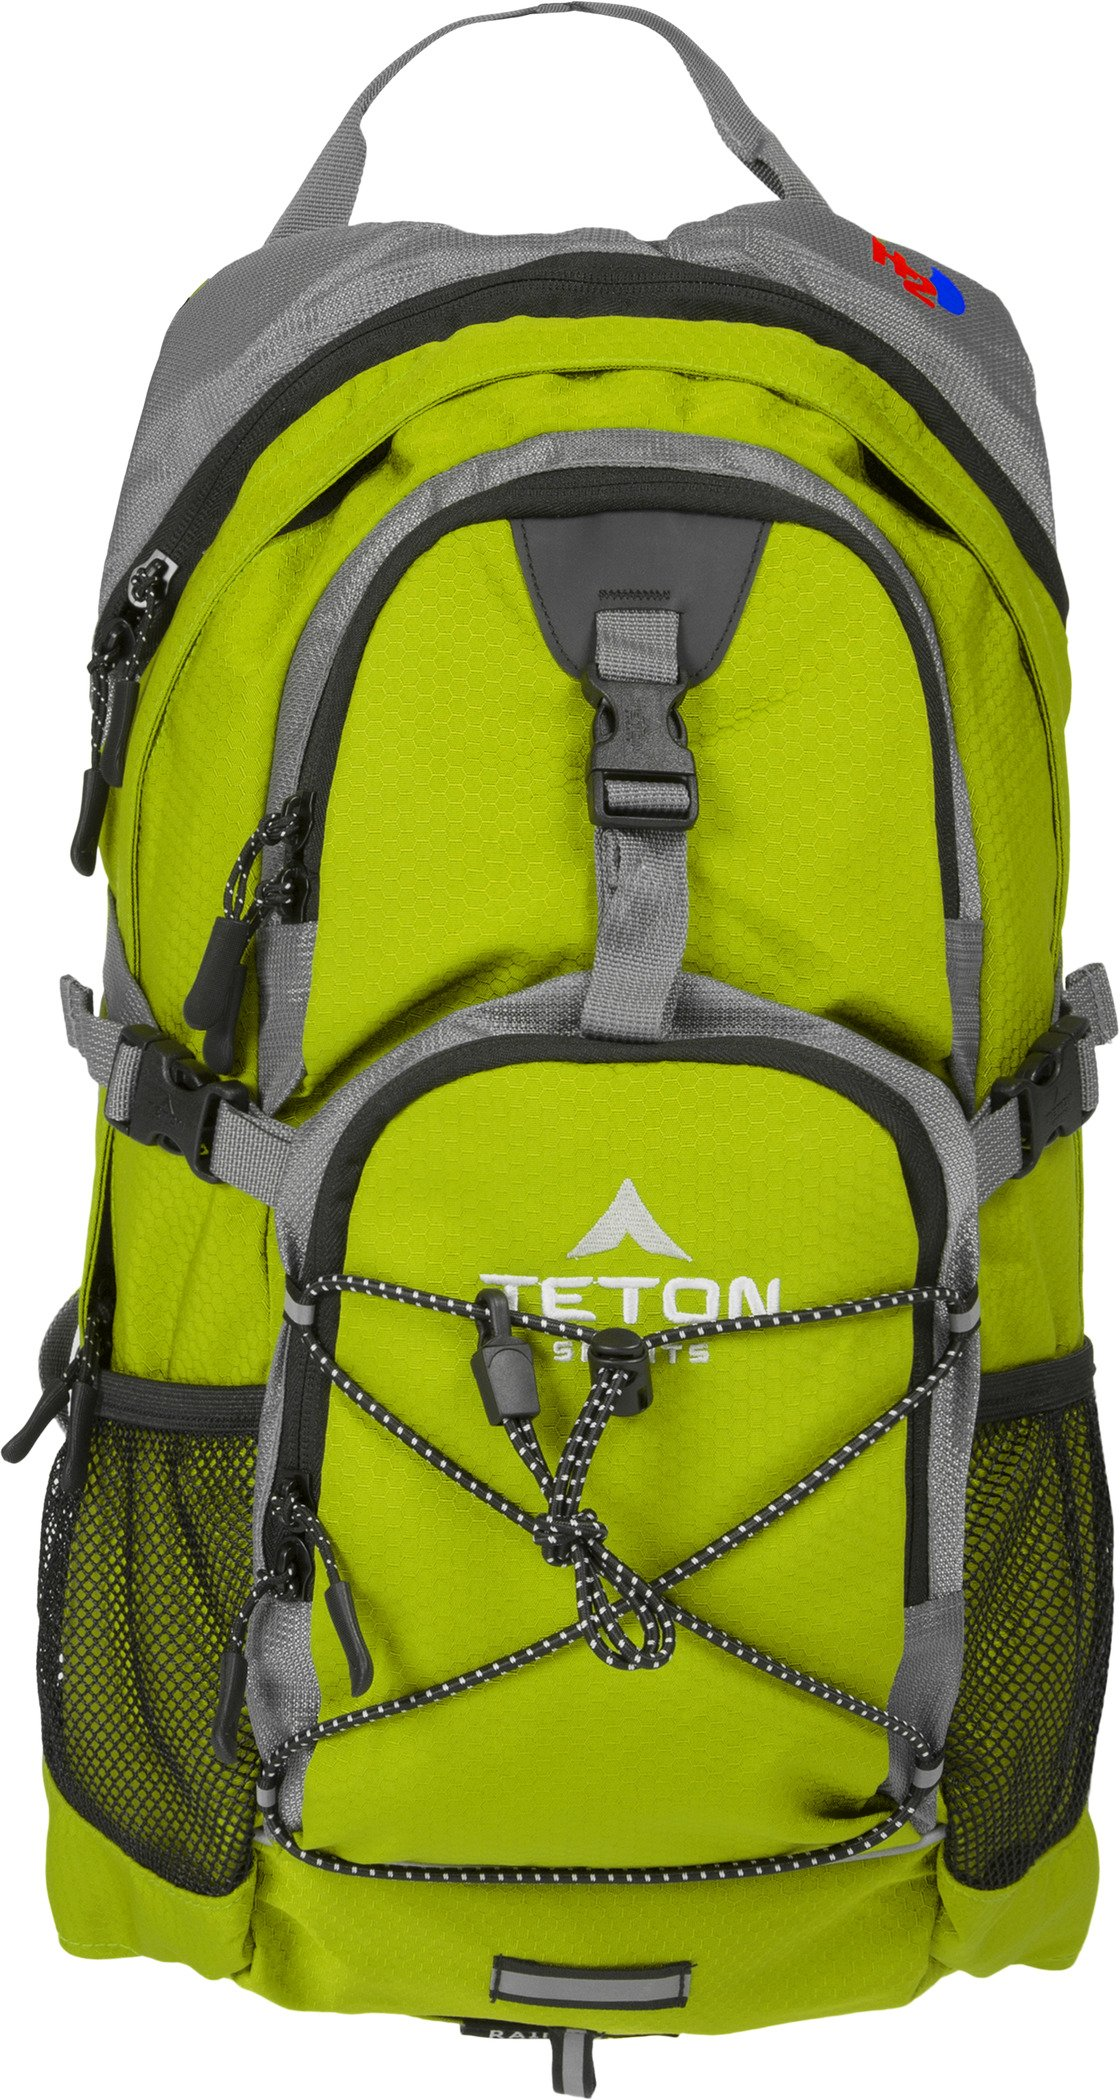 TETON Sports Oasis 1100 Hydration Pack | Free 2-Liter Hydration Bladder | Backpack design great for Hiking, Running, Cycling, and Climbing | Bright Green